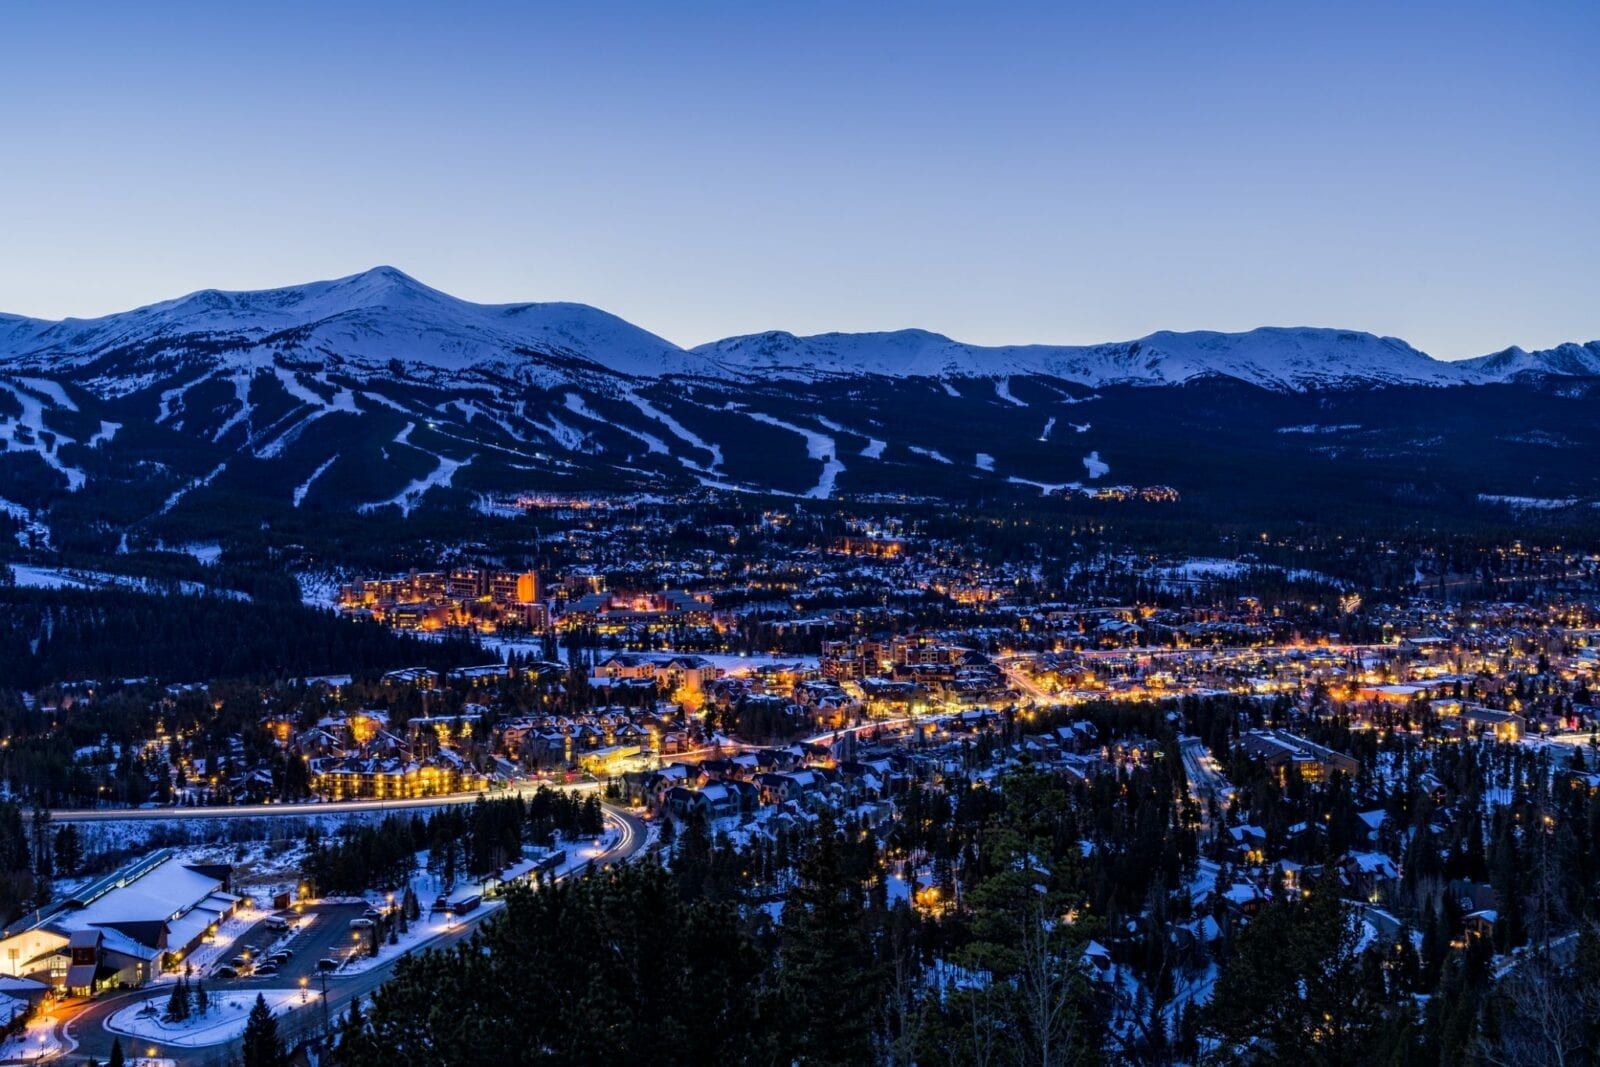 image of Breckenridge